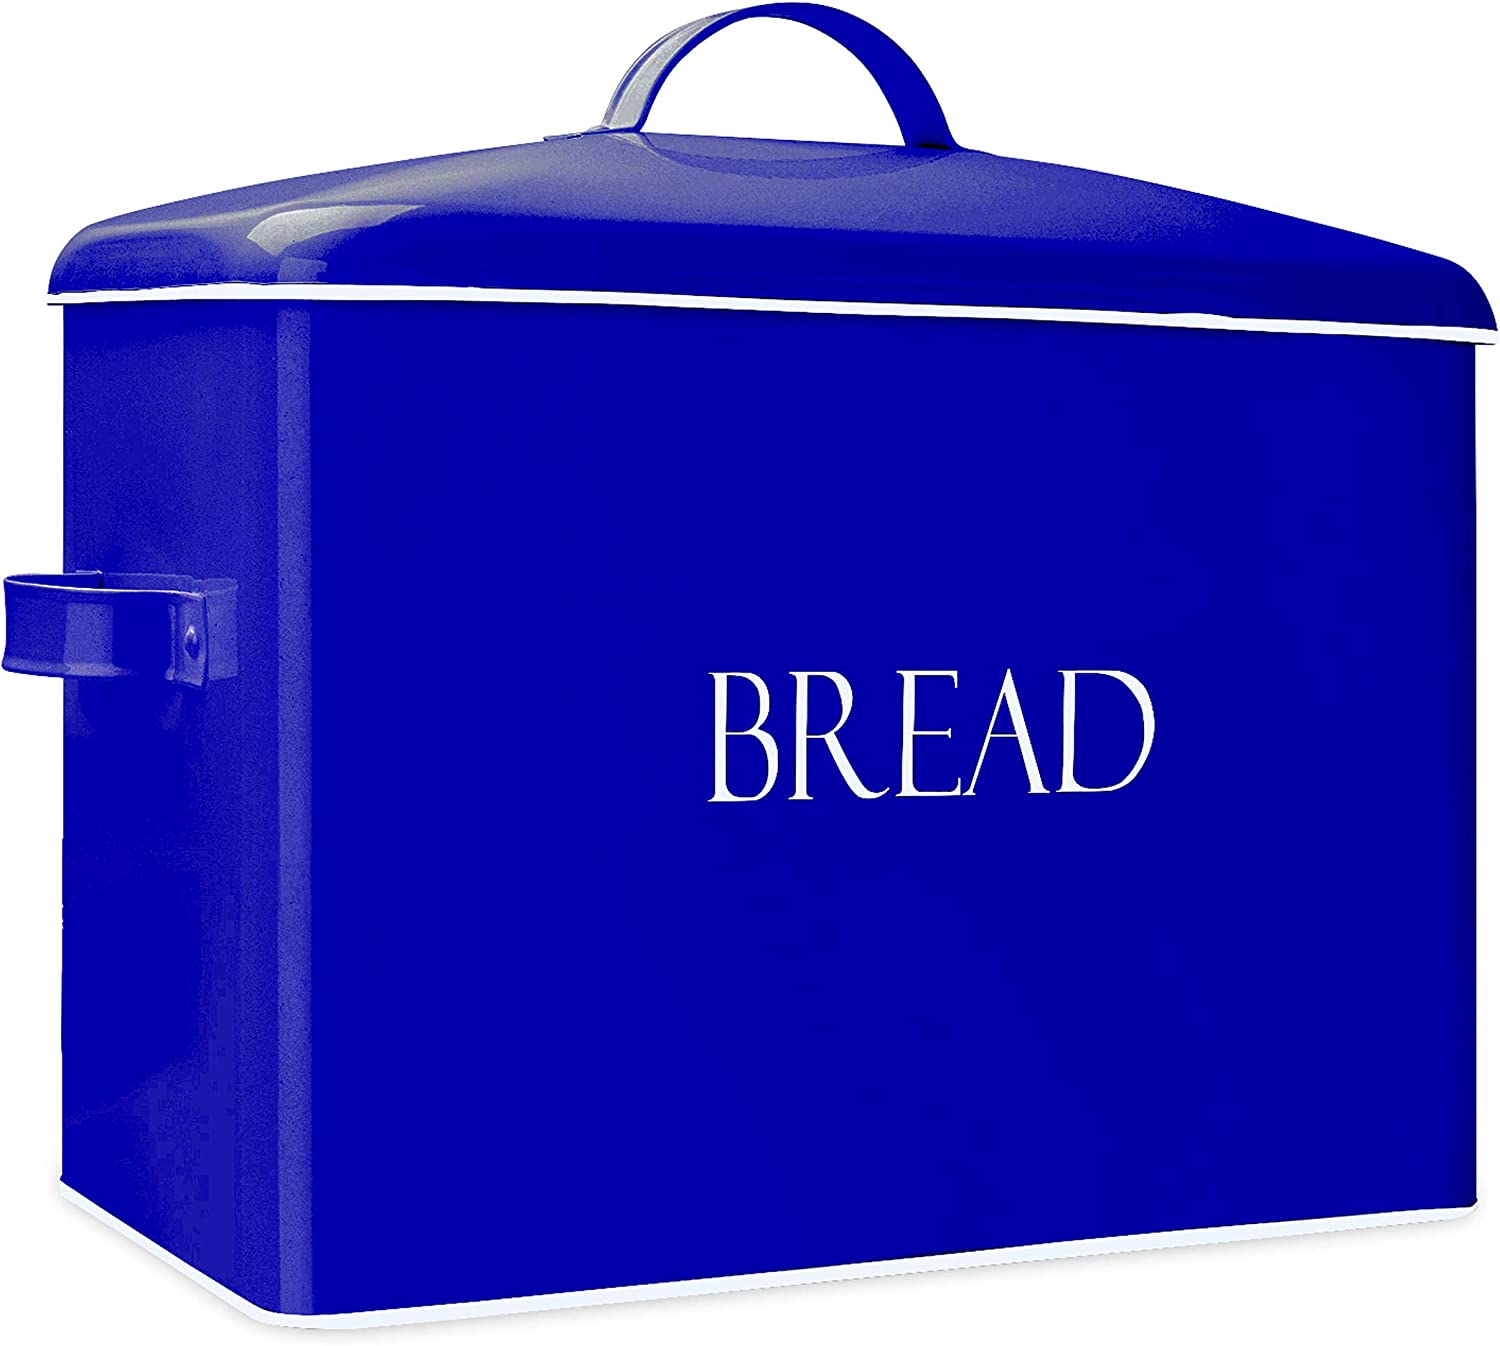 """Blue Vintage Metal Bread Bin - Countertop Space-Saving, Extra Large, High Capacity Bread Storage Box for your Kitchen - Holds 2+ Loaves 13"""" x 10"""" x 7""""- White with BREAD Lettering"""